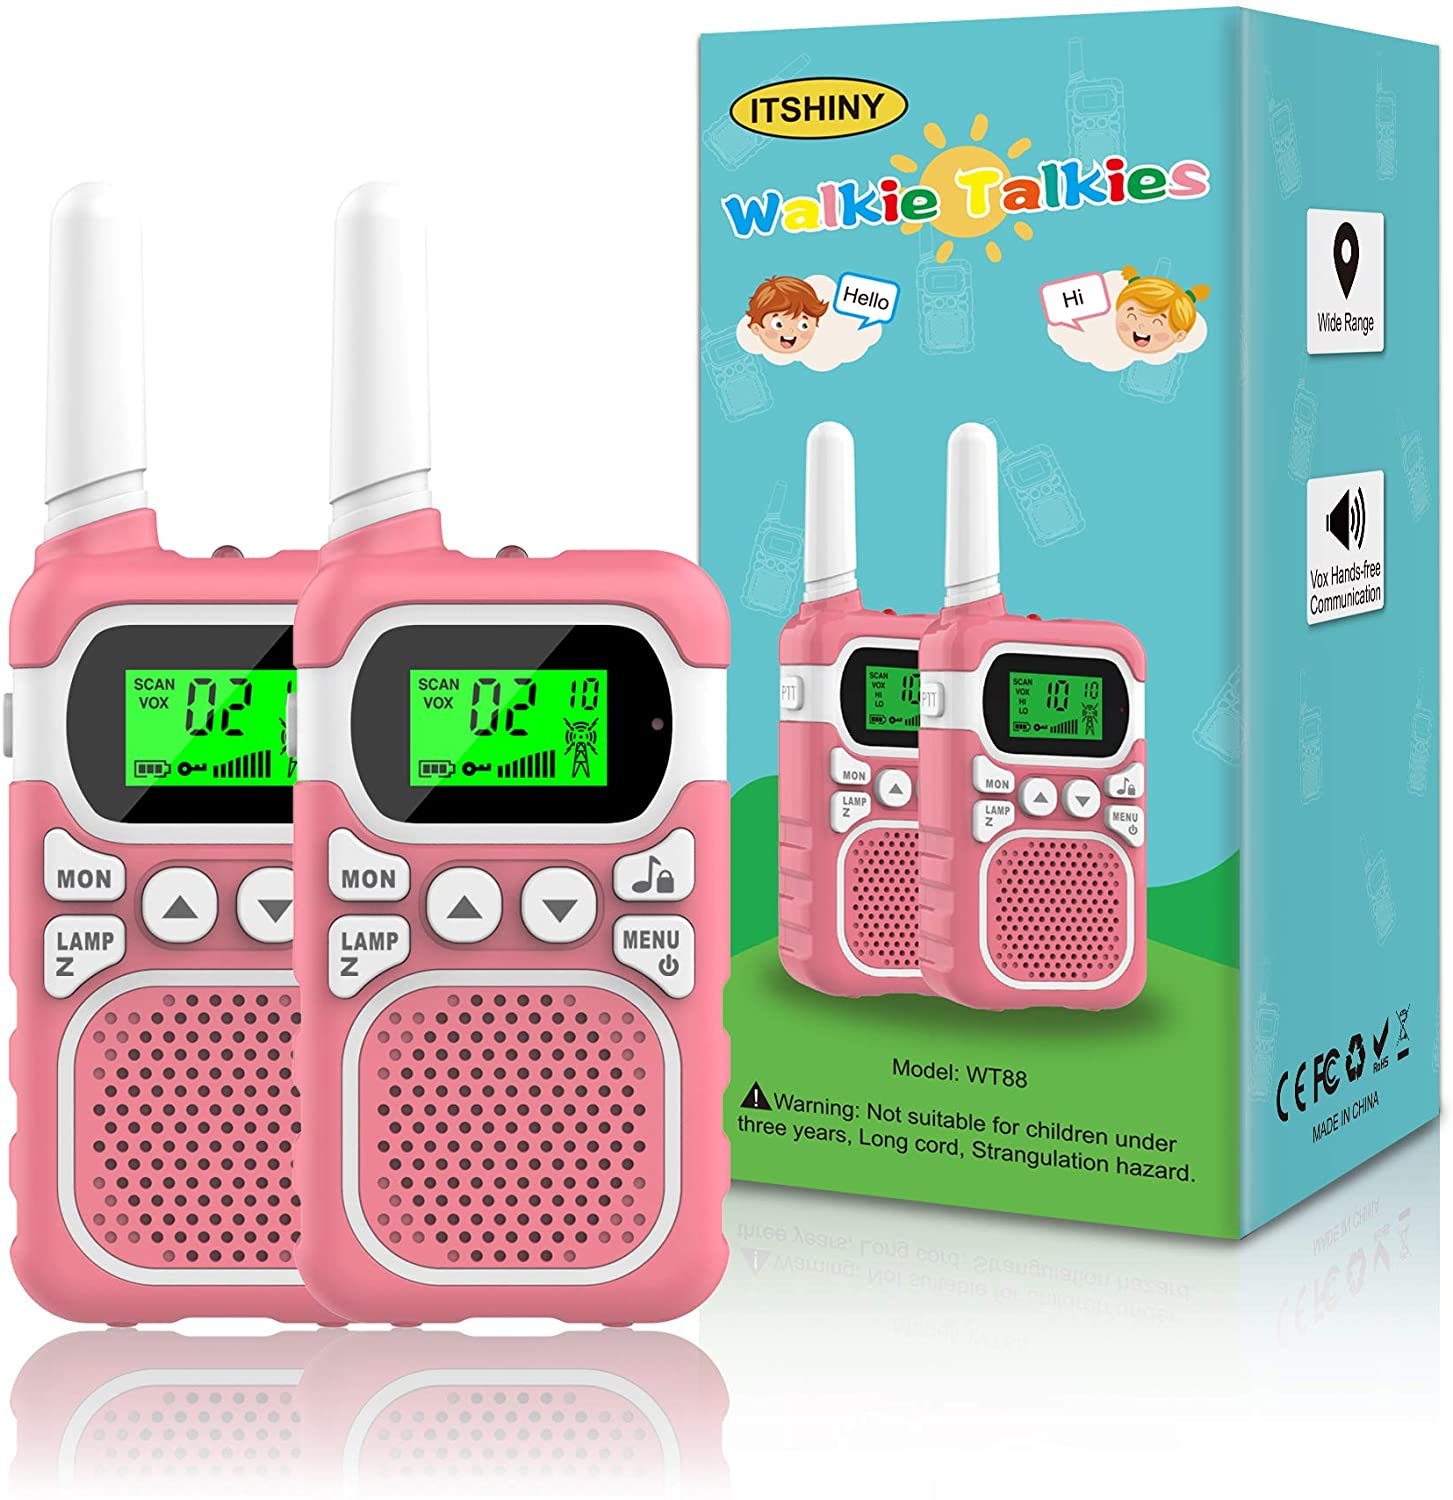 ITSHINY Kids Walkie Talkies, Walkie Talkies with 22 Channels & 3 Mile Range for Outdoor Hiking Camping Children Toy Gifts for 3-12 Year Old Boys Girls -Pink